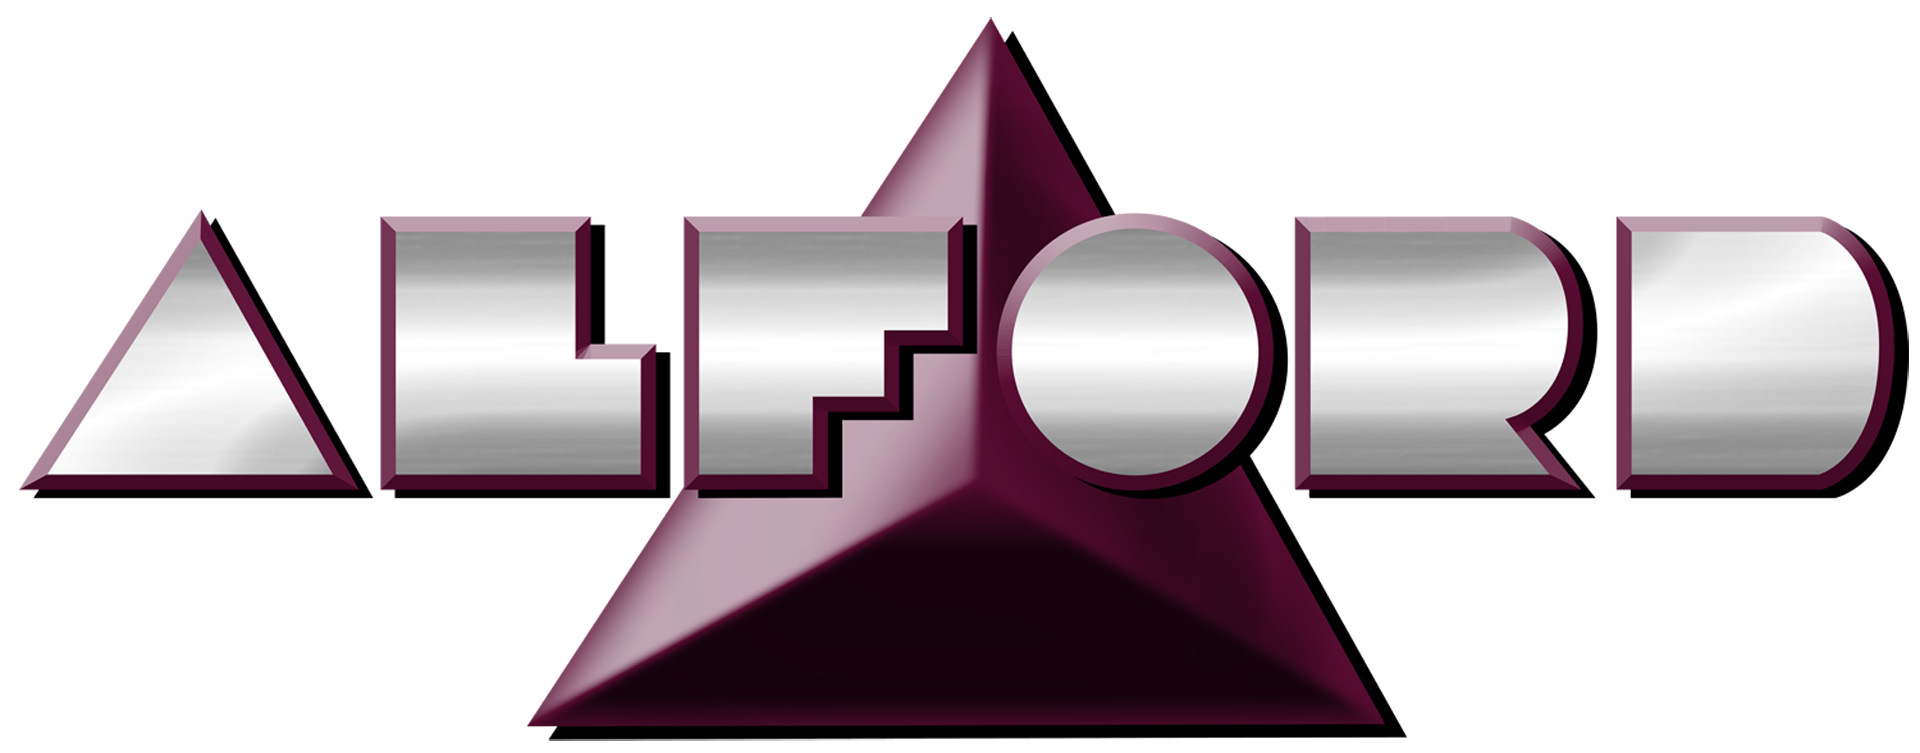 alford-logo-4c-high-res-1920_bw.png